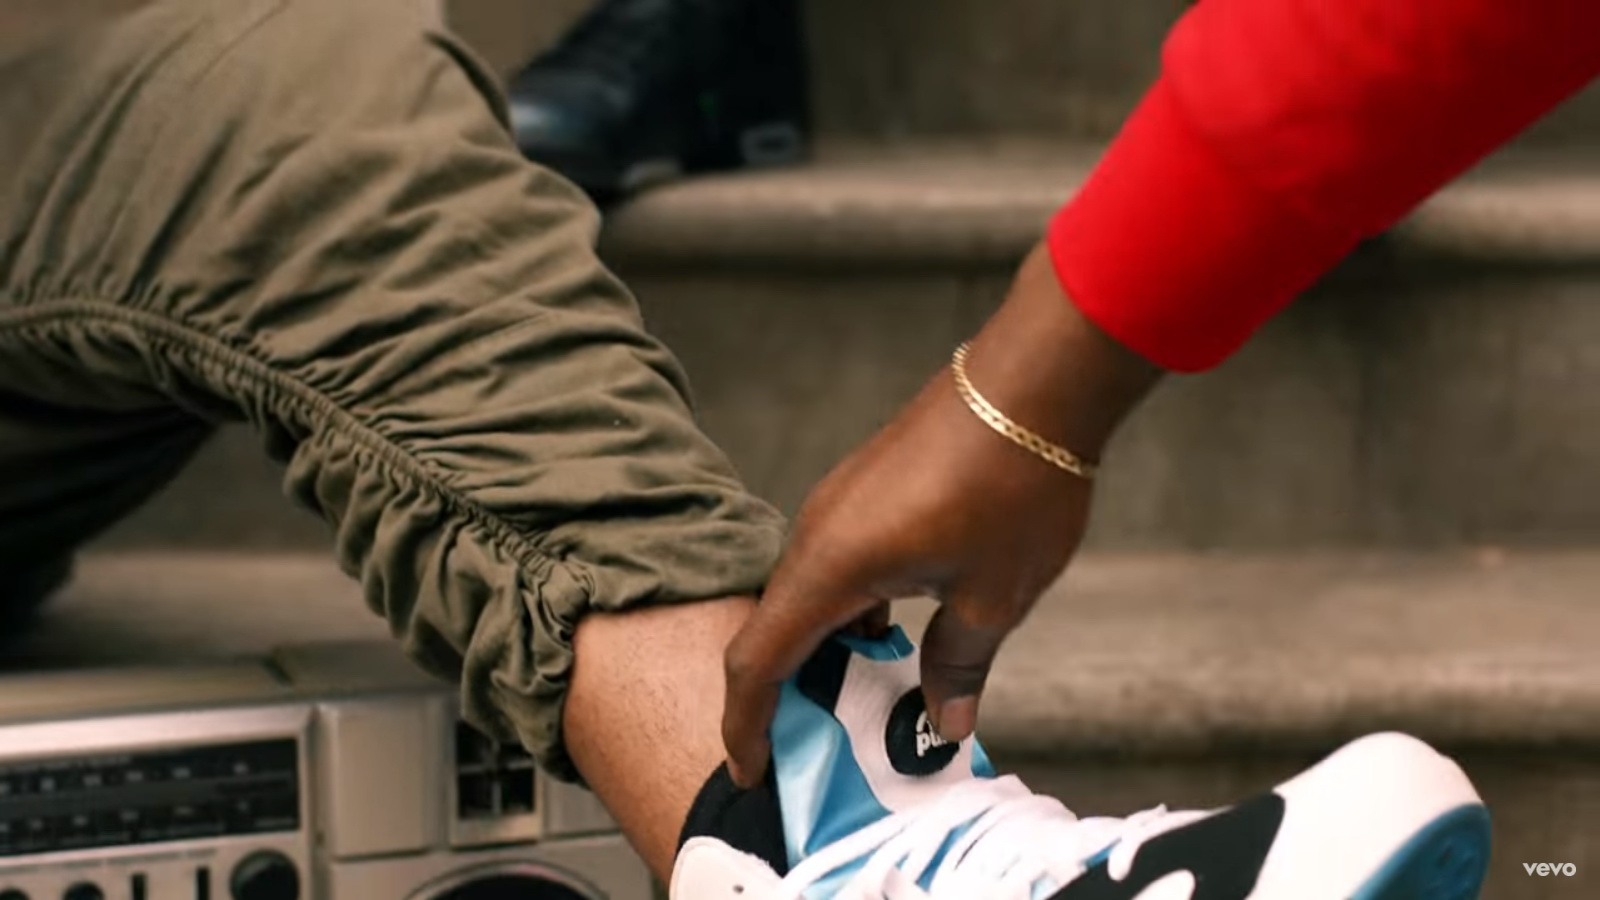 Reebok Pump Sneakers - Jeremih - I Think Of You Official Music Video Product Placement